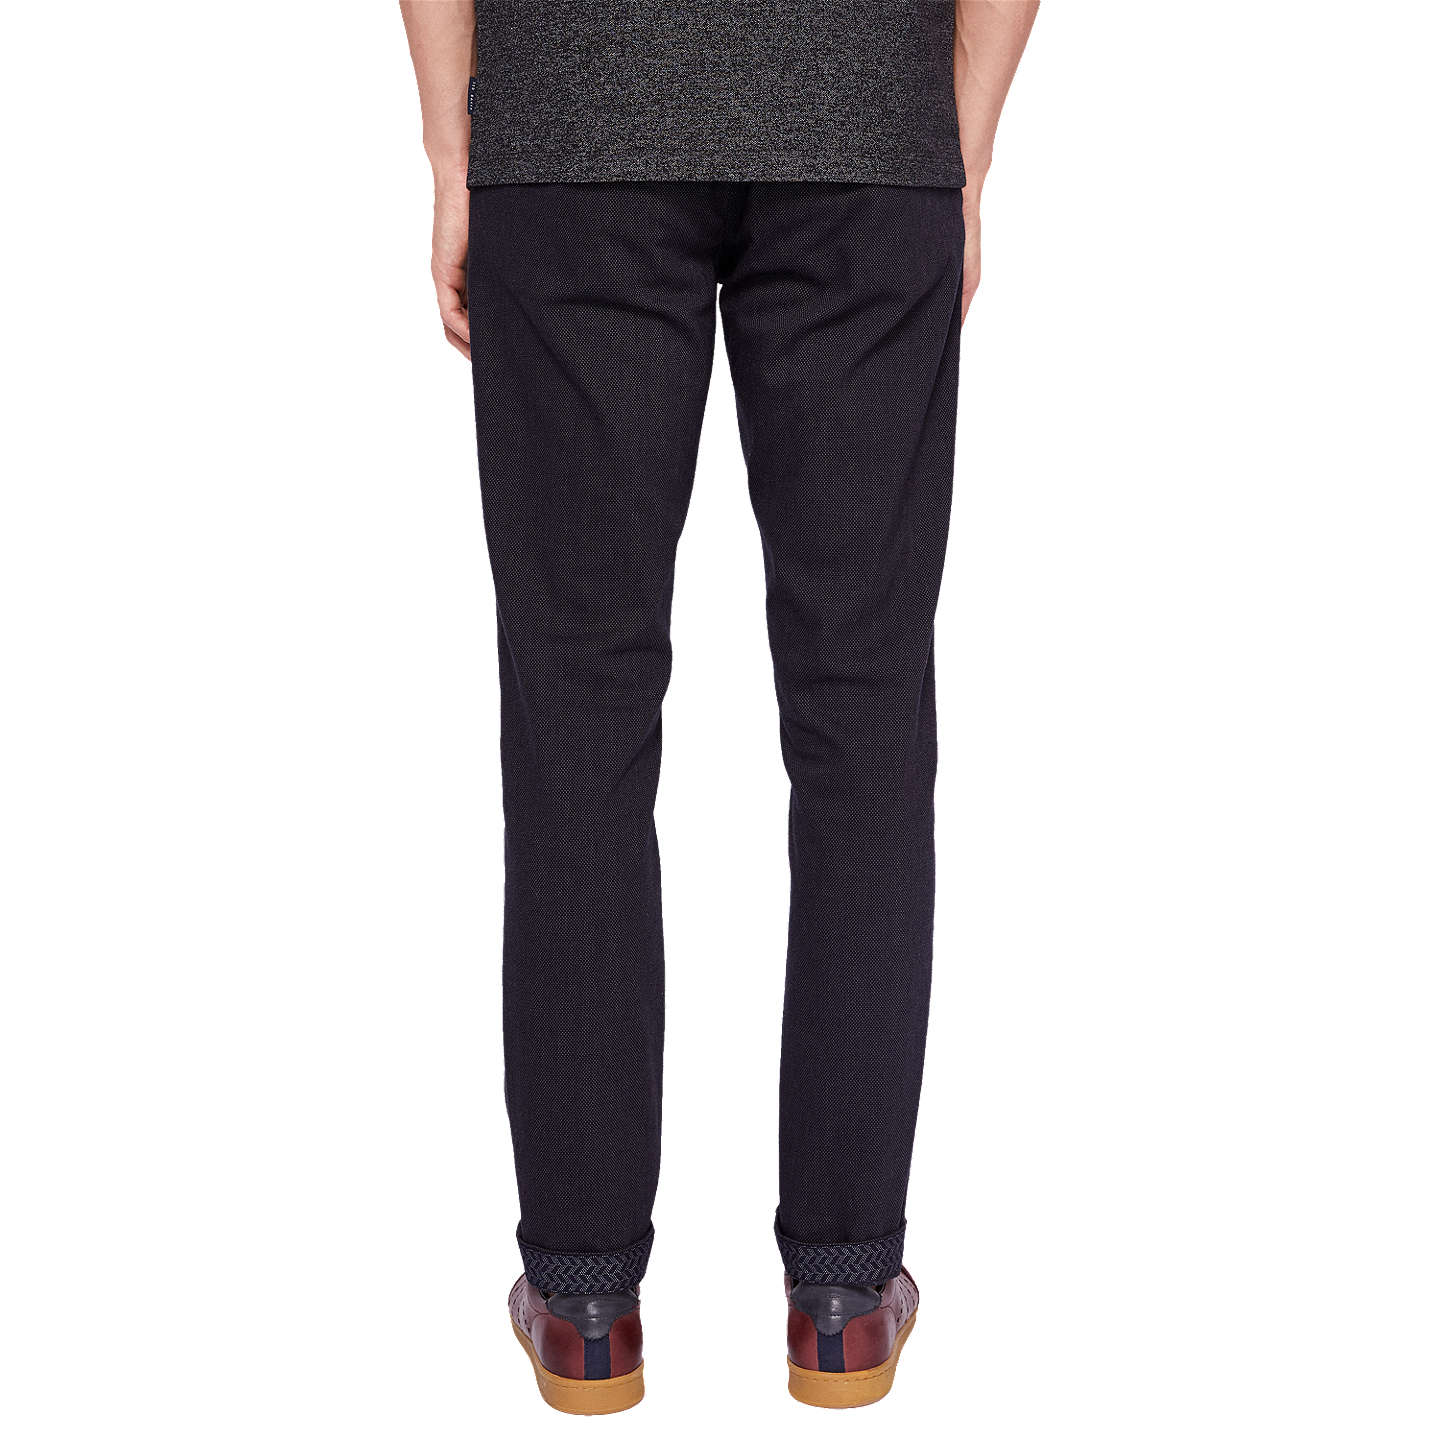 BuyTed Baker Maxchi Slim Fit Textured Trousers, Charcoal, 30S Online at johnlewis.com